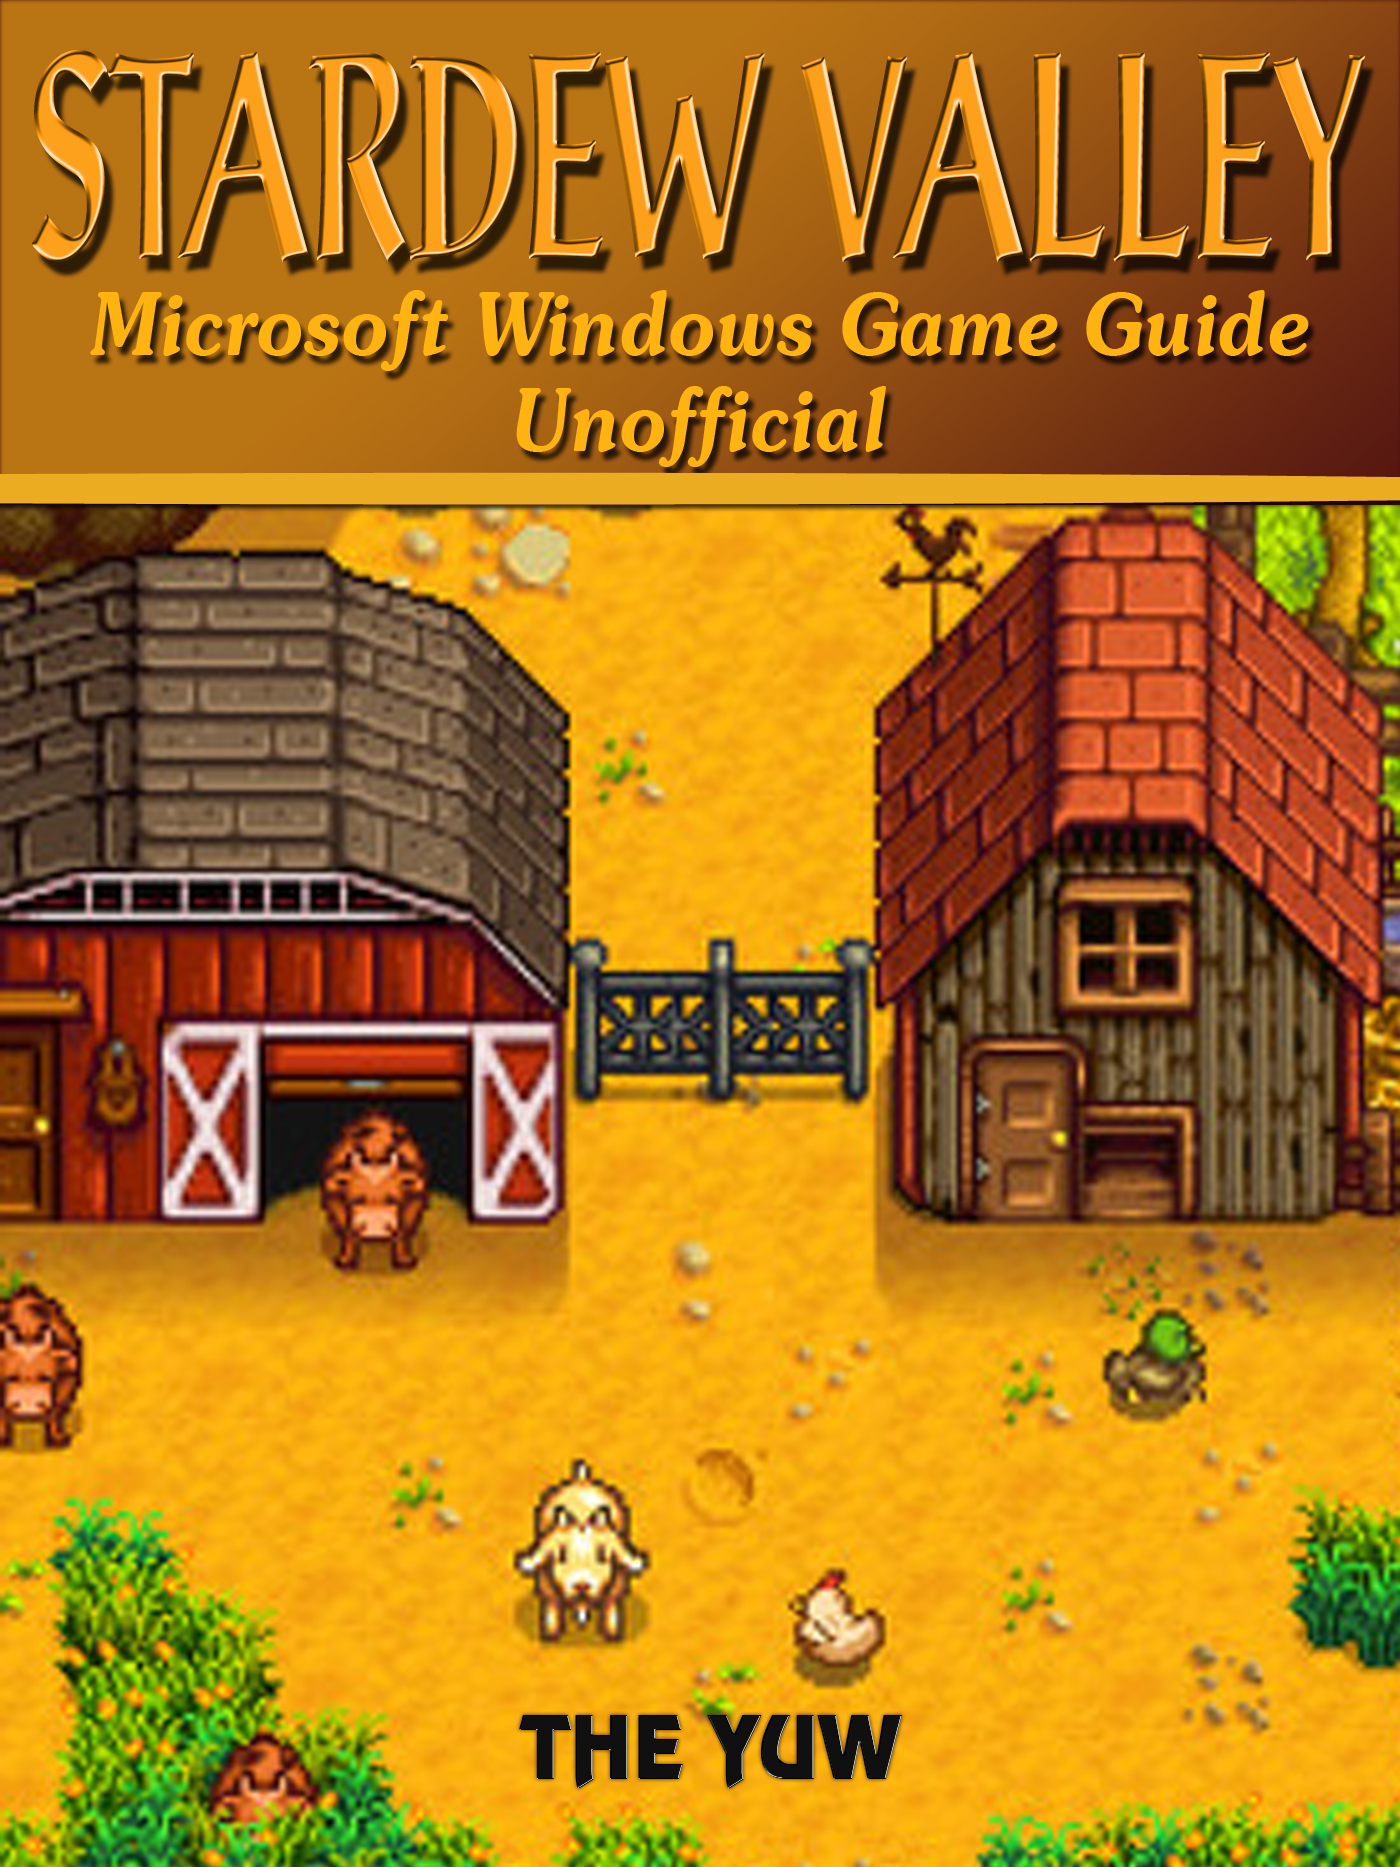 Stardew Valley Microsoft Windows Game Guide Unofficial